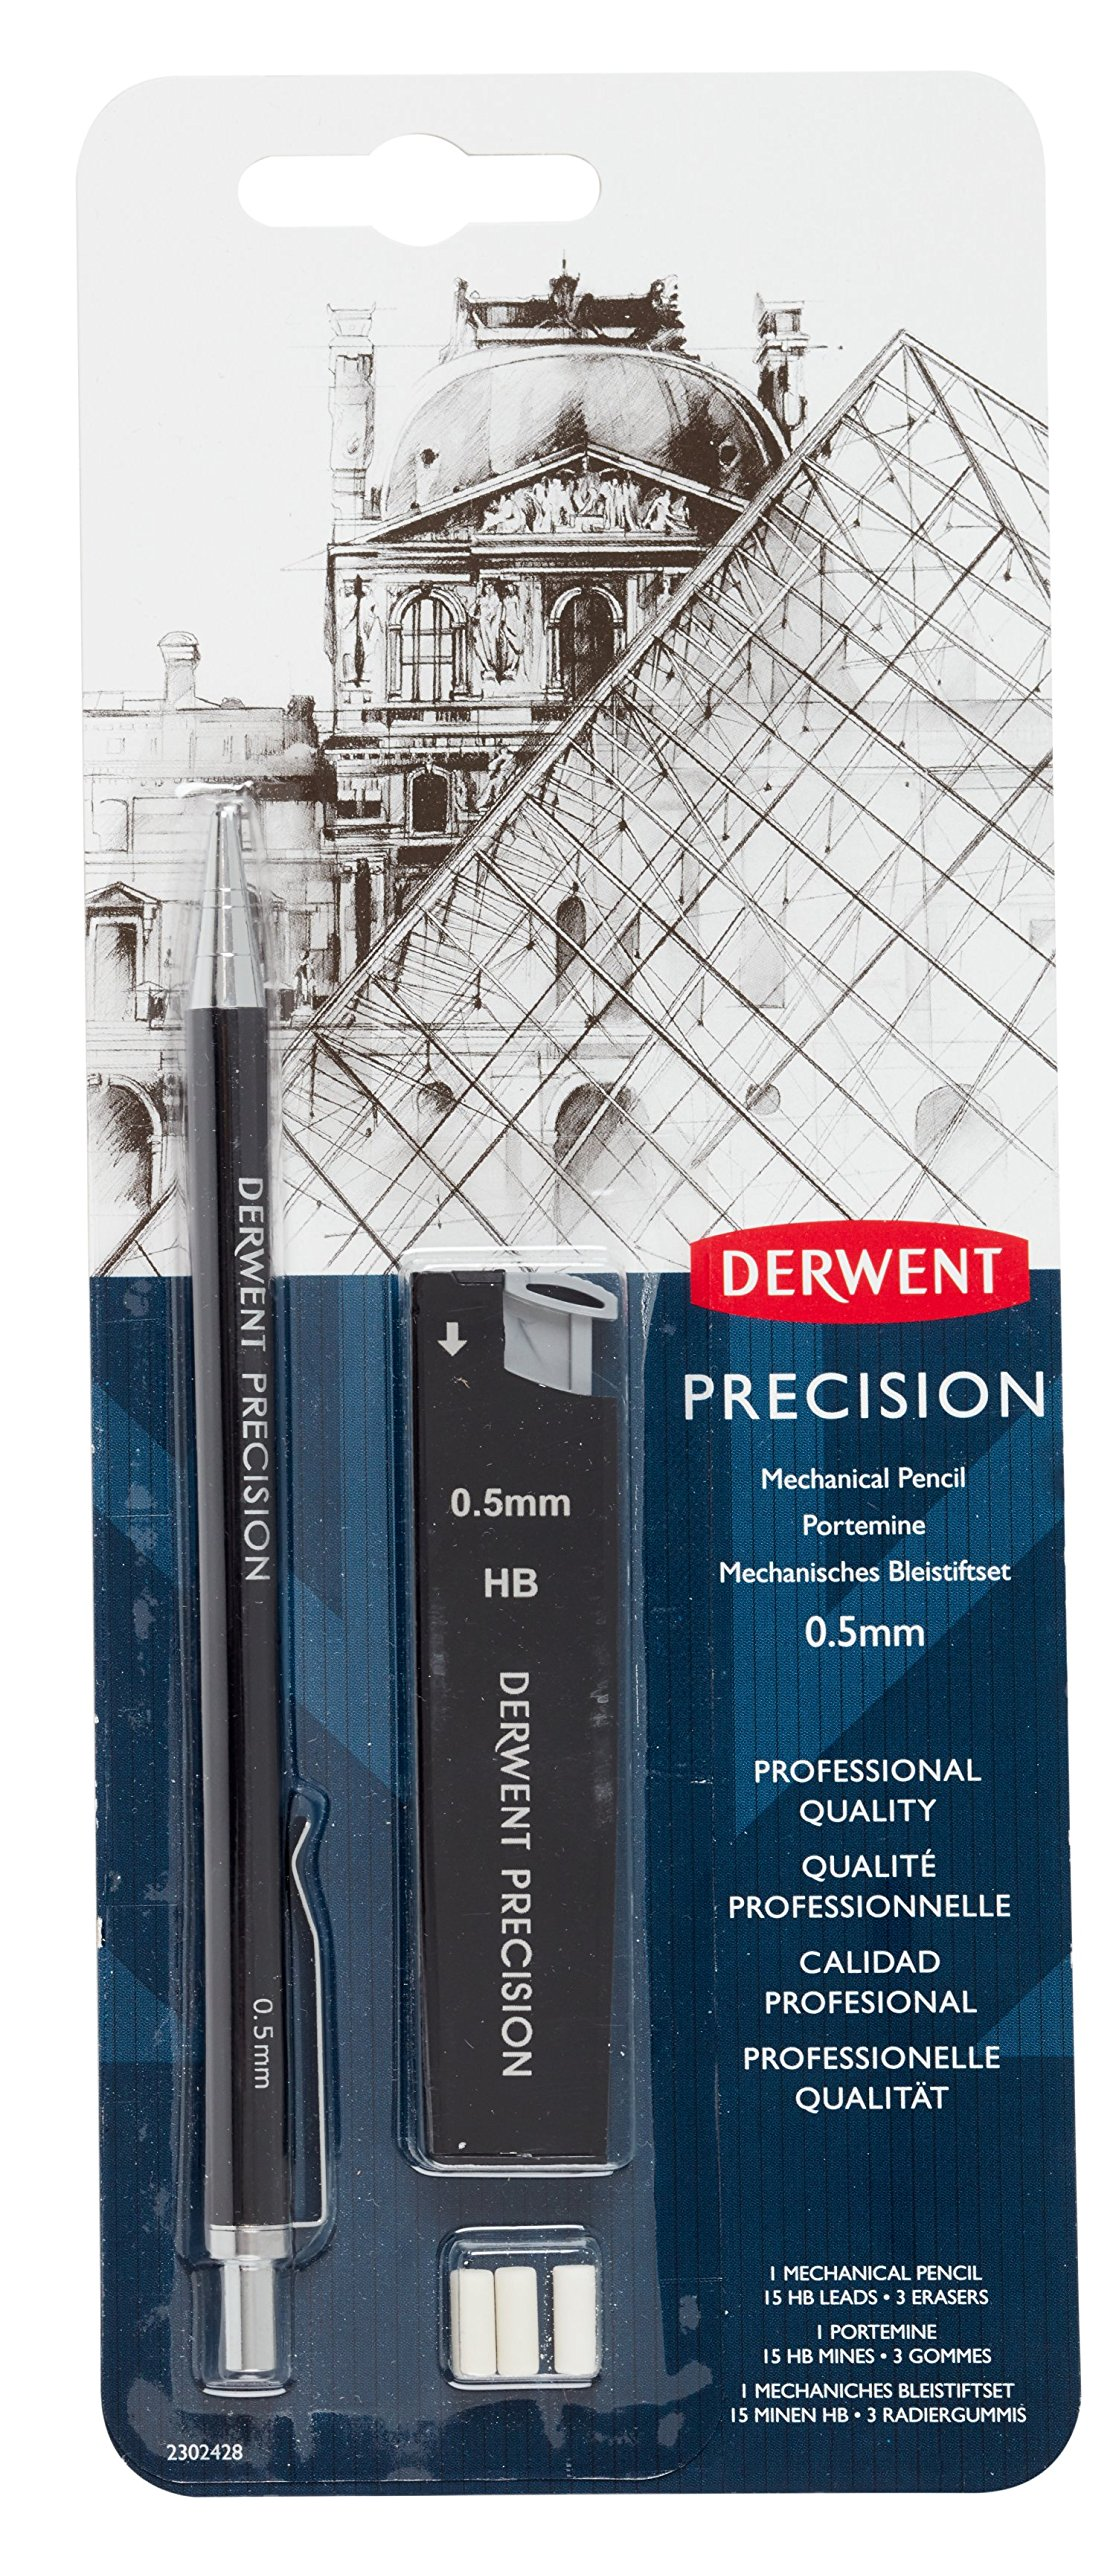 Derwent Mechanical Pencils 0.5, Metal Barrel, Precision, HB (2302428)